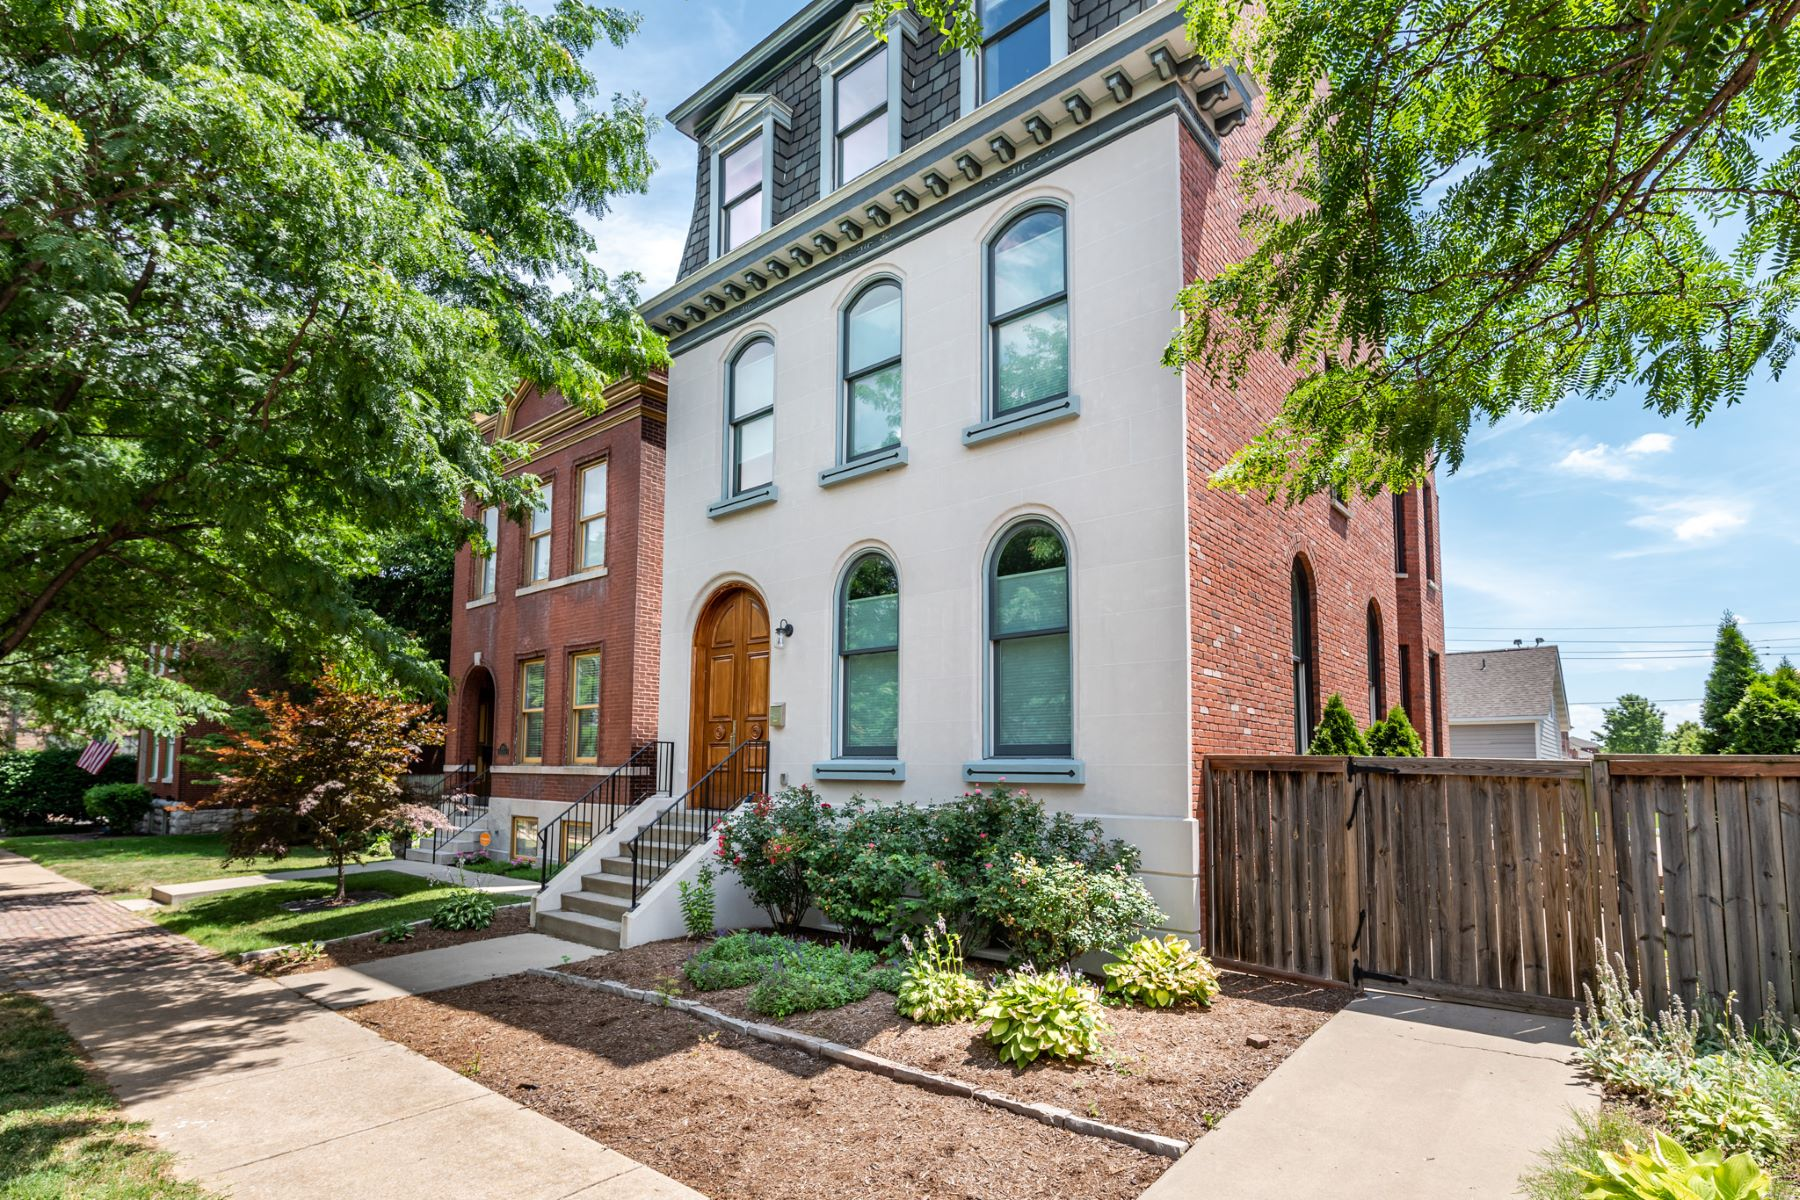 Single Family Homes for Sale at Newer Construction in Victorian Lafayette Square 1100 Dolman Street St. Louis, Missouri 63104 United States